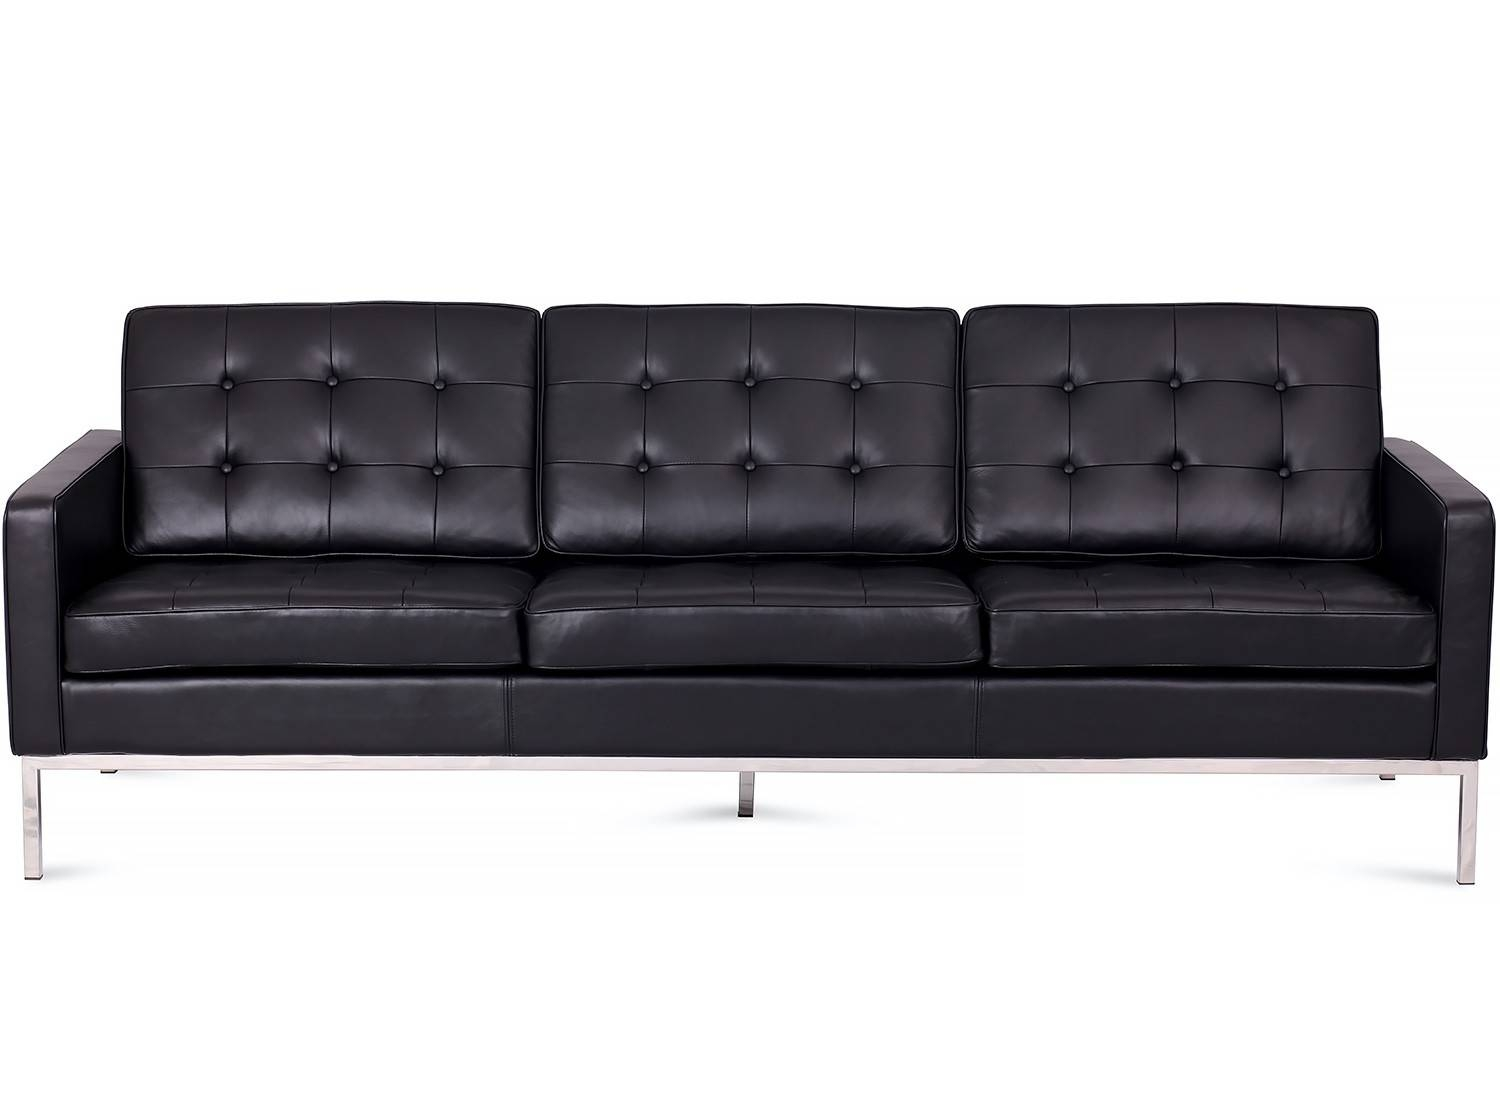 Florence Knoll Sofa 3 Seater Leather (Platinum Replica) regarding Florence Knoll Sofas (Image 9 of 15)